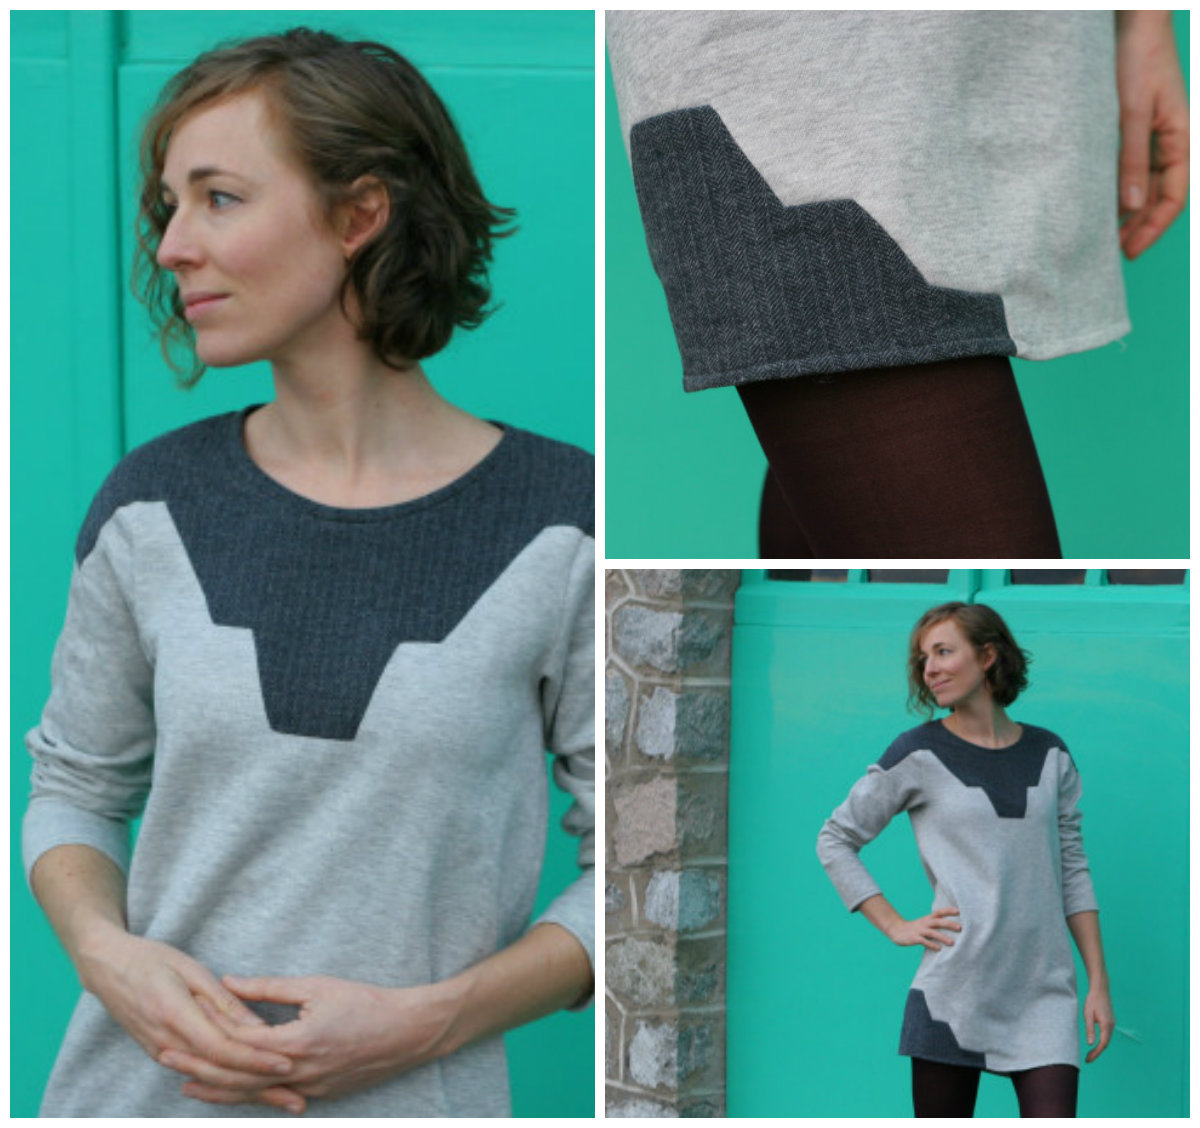 This sweater is made of 4 separate pieces. You will have two identical front and back panels. Then, you will create identical sleeve panels. The sweater is started at the ribbing section and turned to work each panel from the bottom up. The design offers a drop-sleeve style.